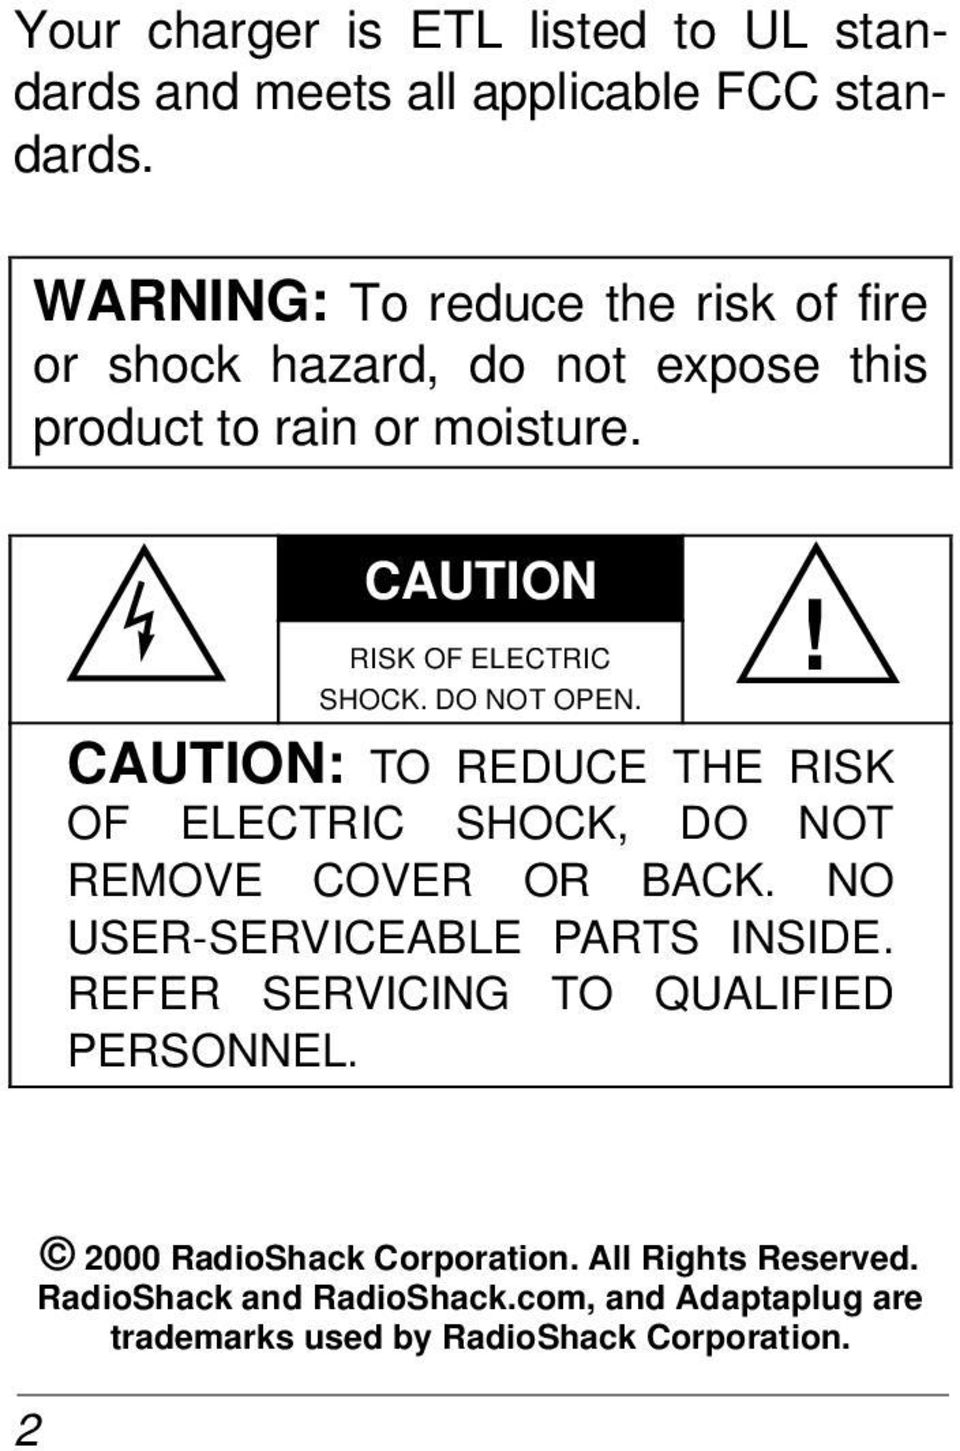 CAUTION RISK OF ELECTRIC SHOCK. DO NOT OPEN.! CAUTION: TO REDUCE THE RISK OF ELECTRIC SHOCK, DO NOT REMOVE COVER OR BACK.